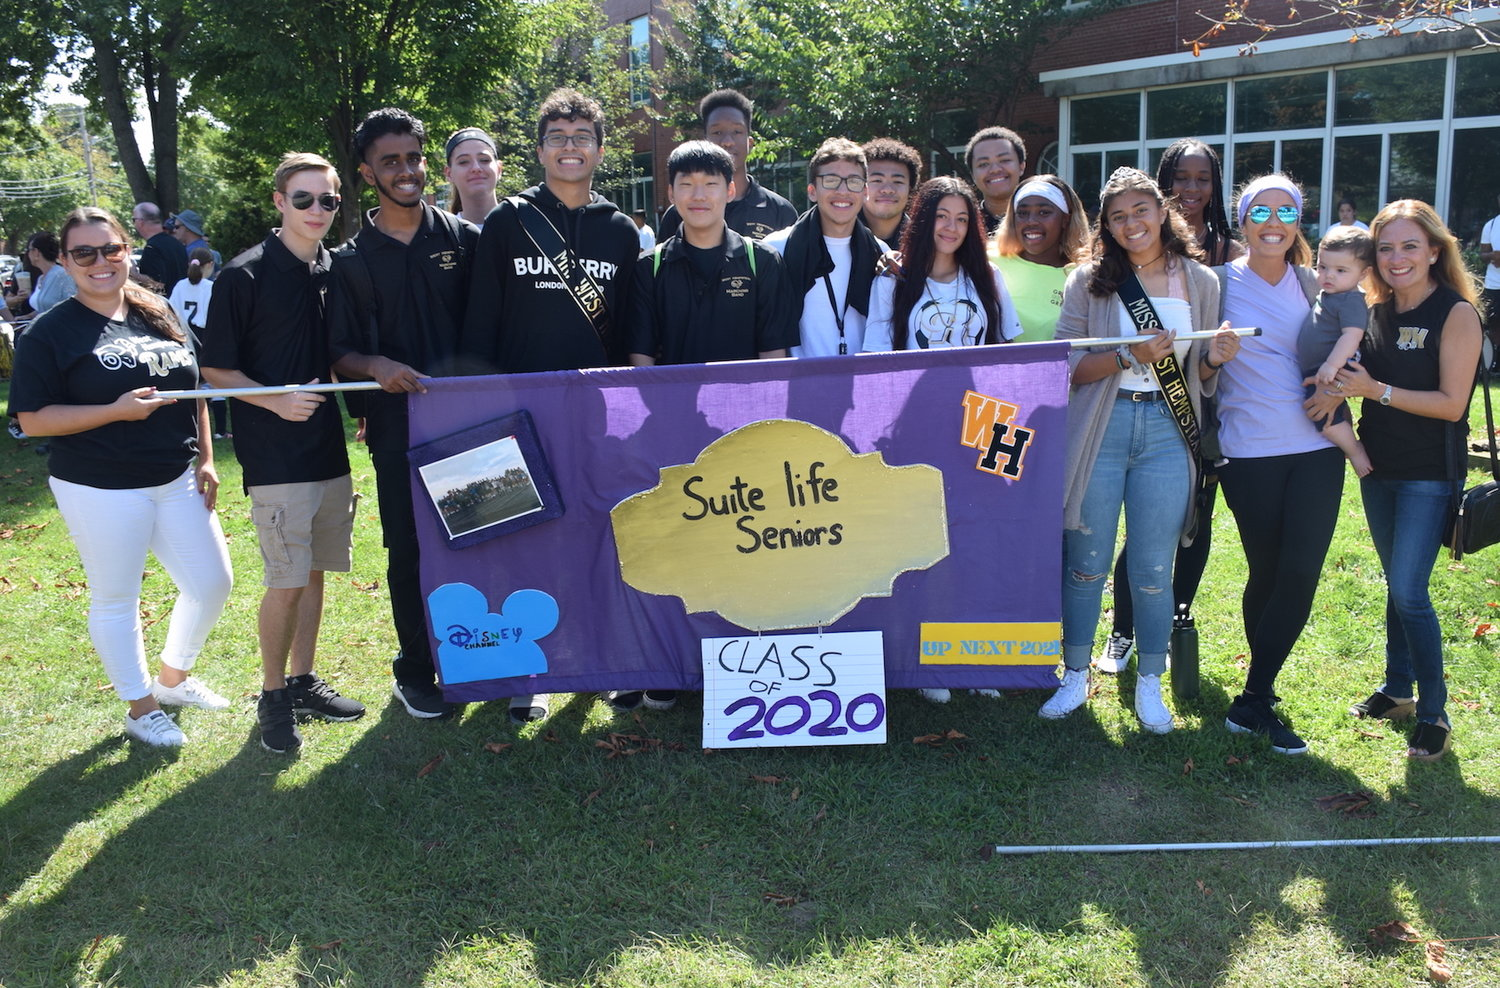 West Hempstead High's senior class displayed its banner at the parade.